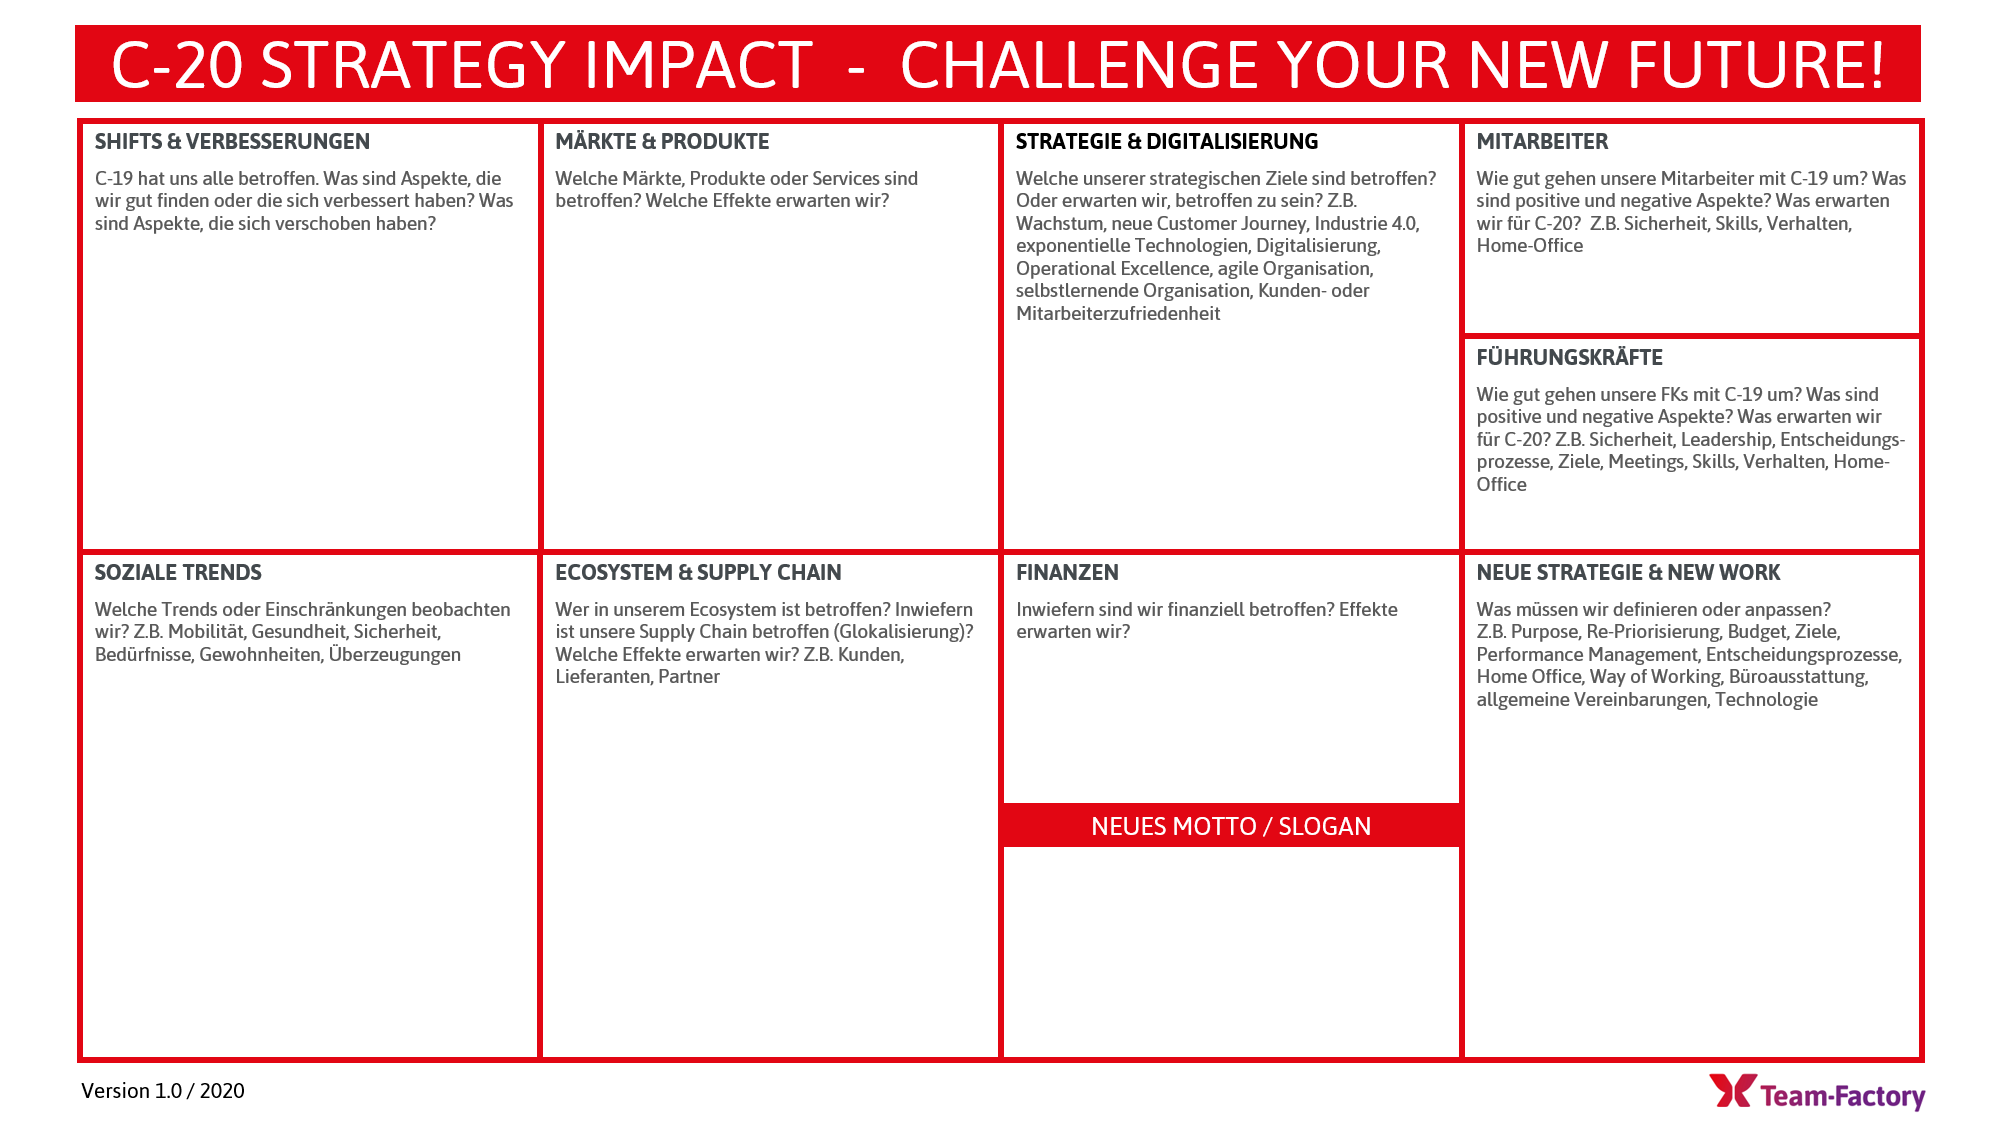 C-20-Strategy-Impact_Template